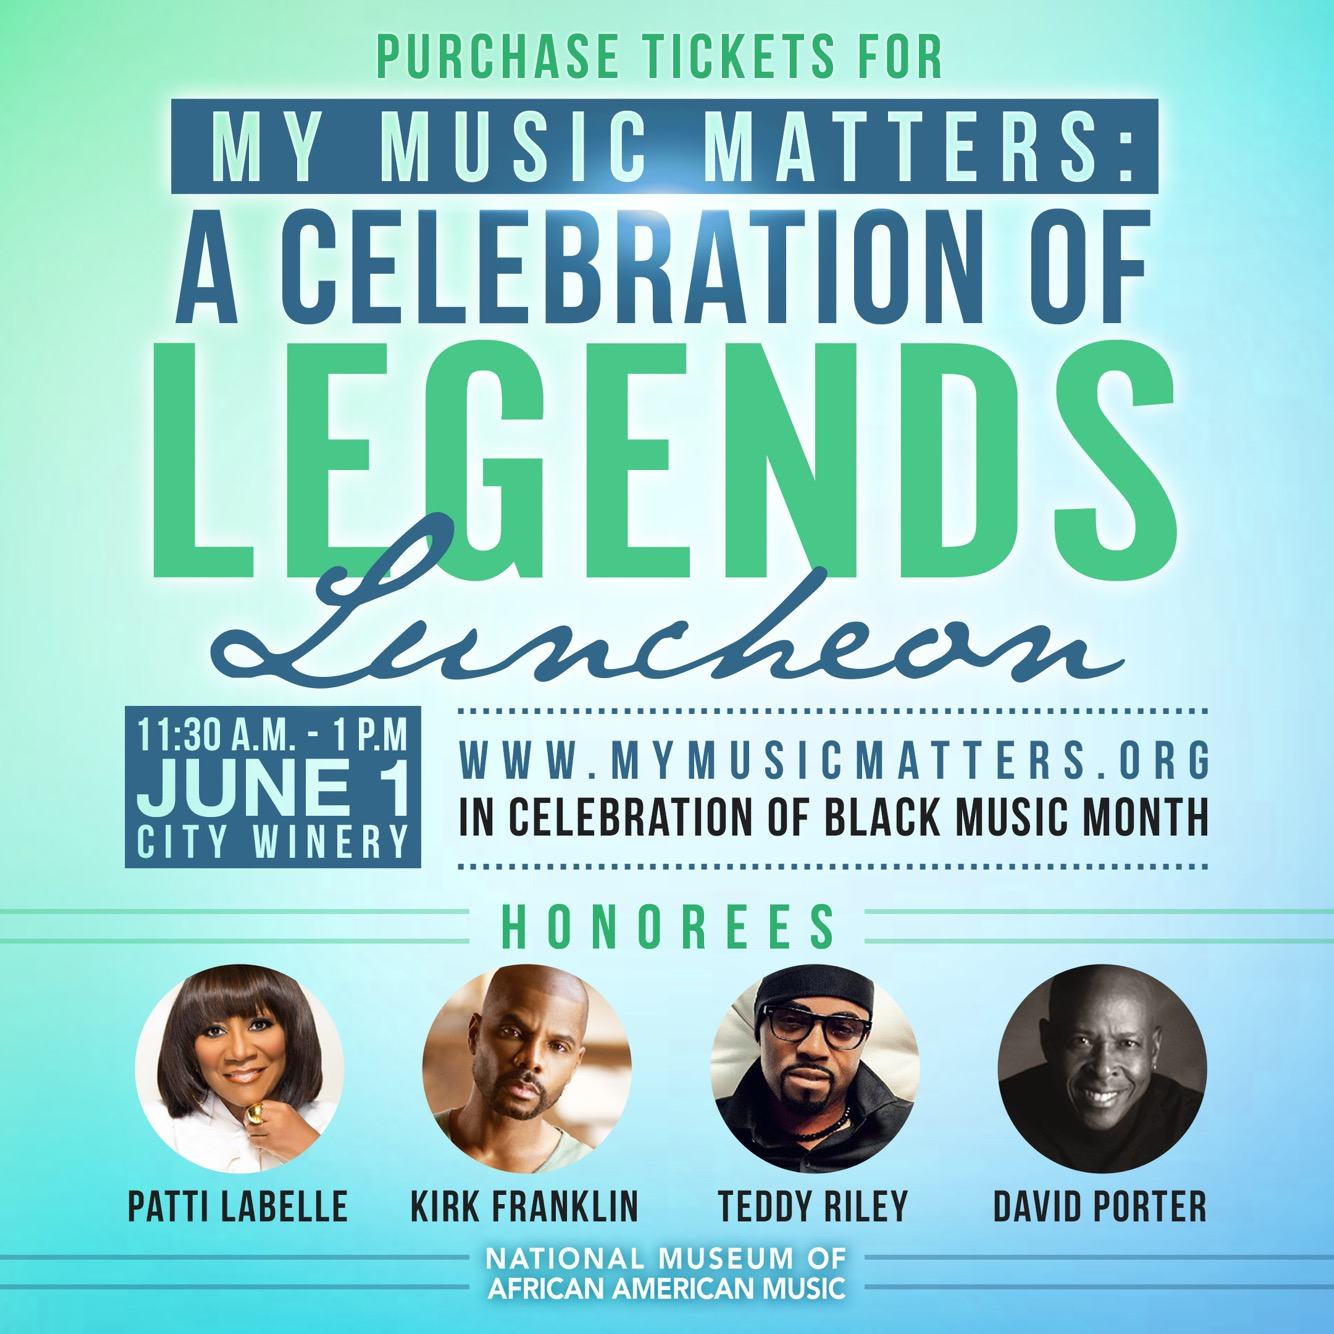 National Museum of African American Music to Honor Patti LaBelle at 2017 Legends Luncheon